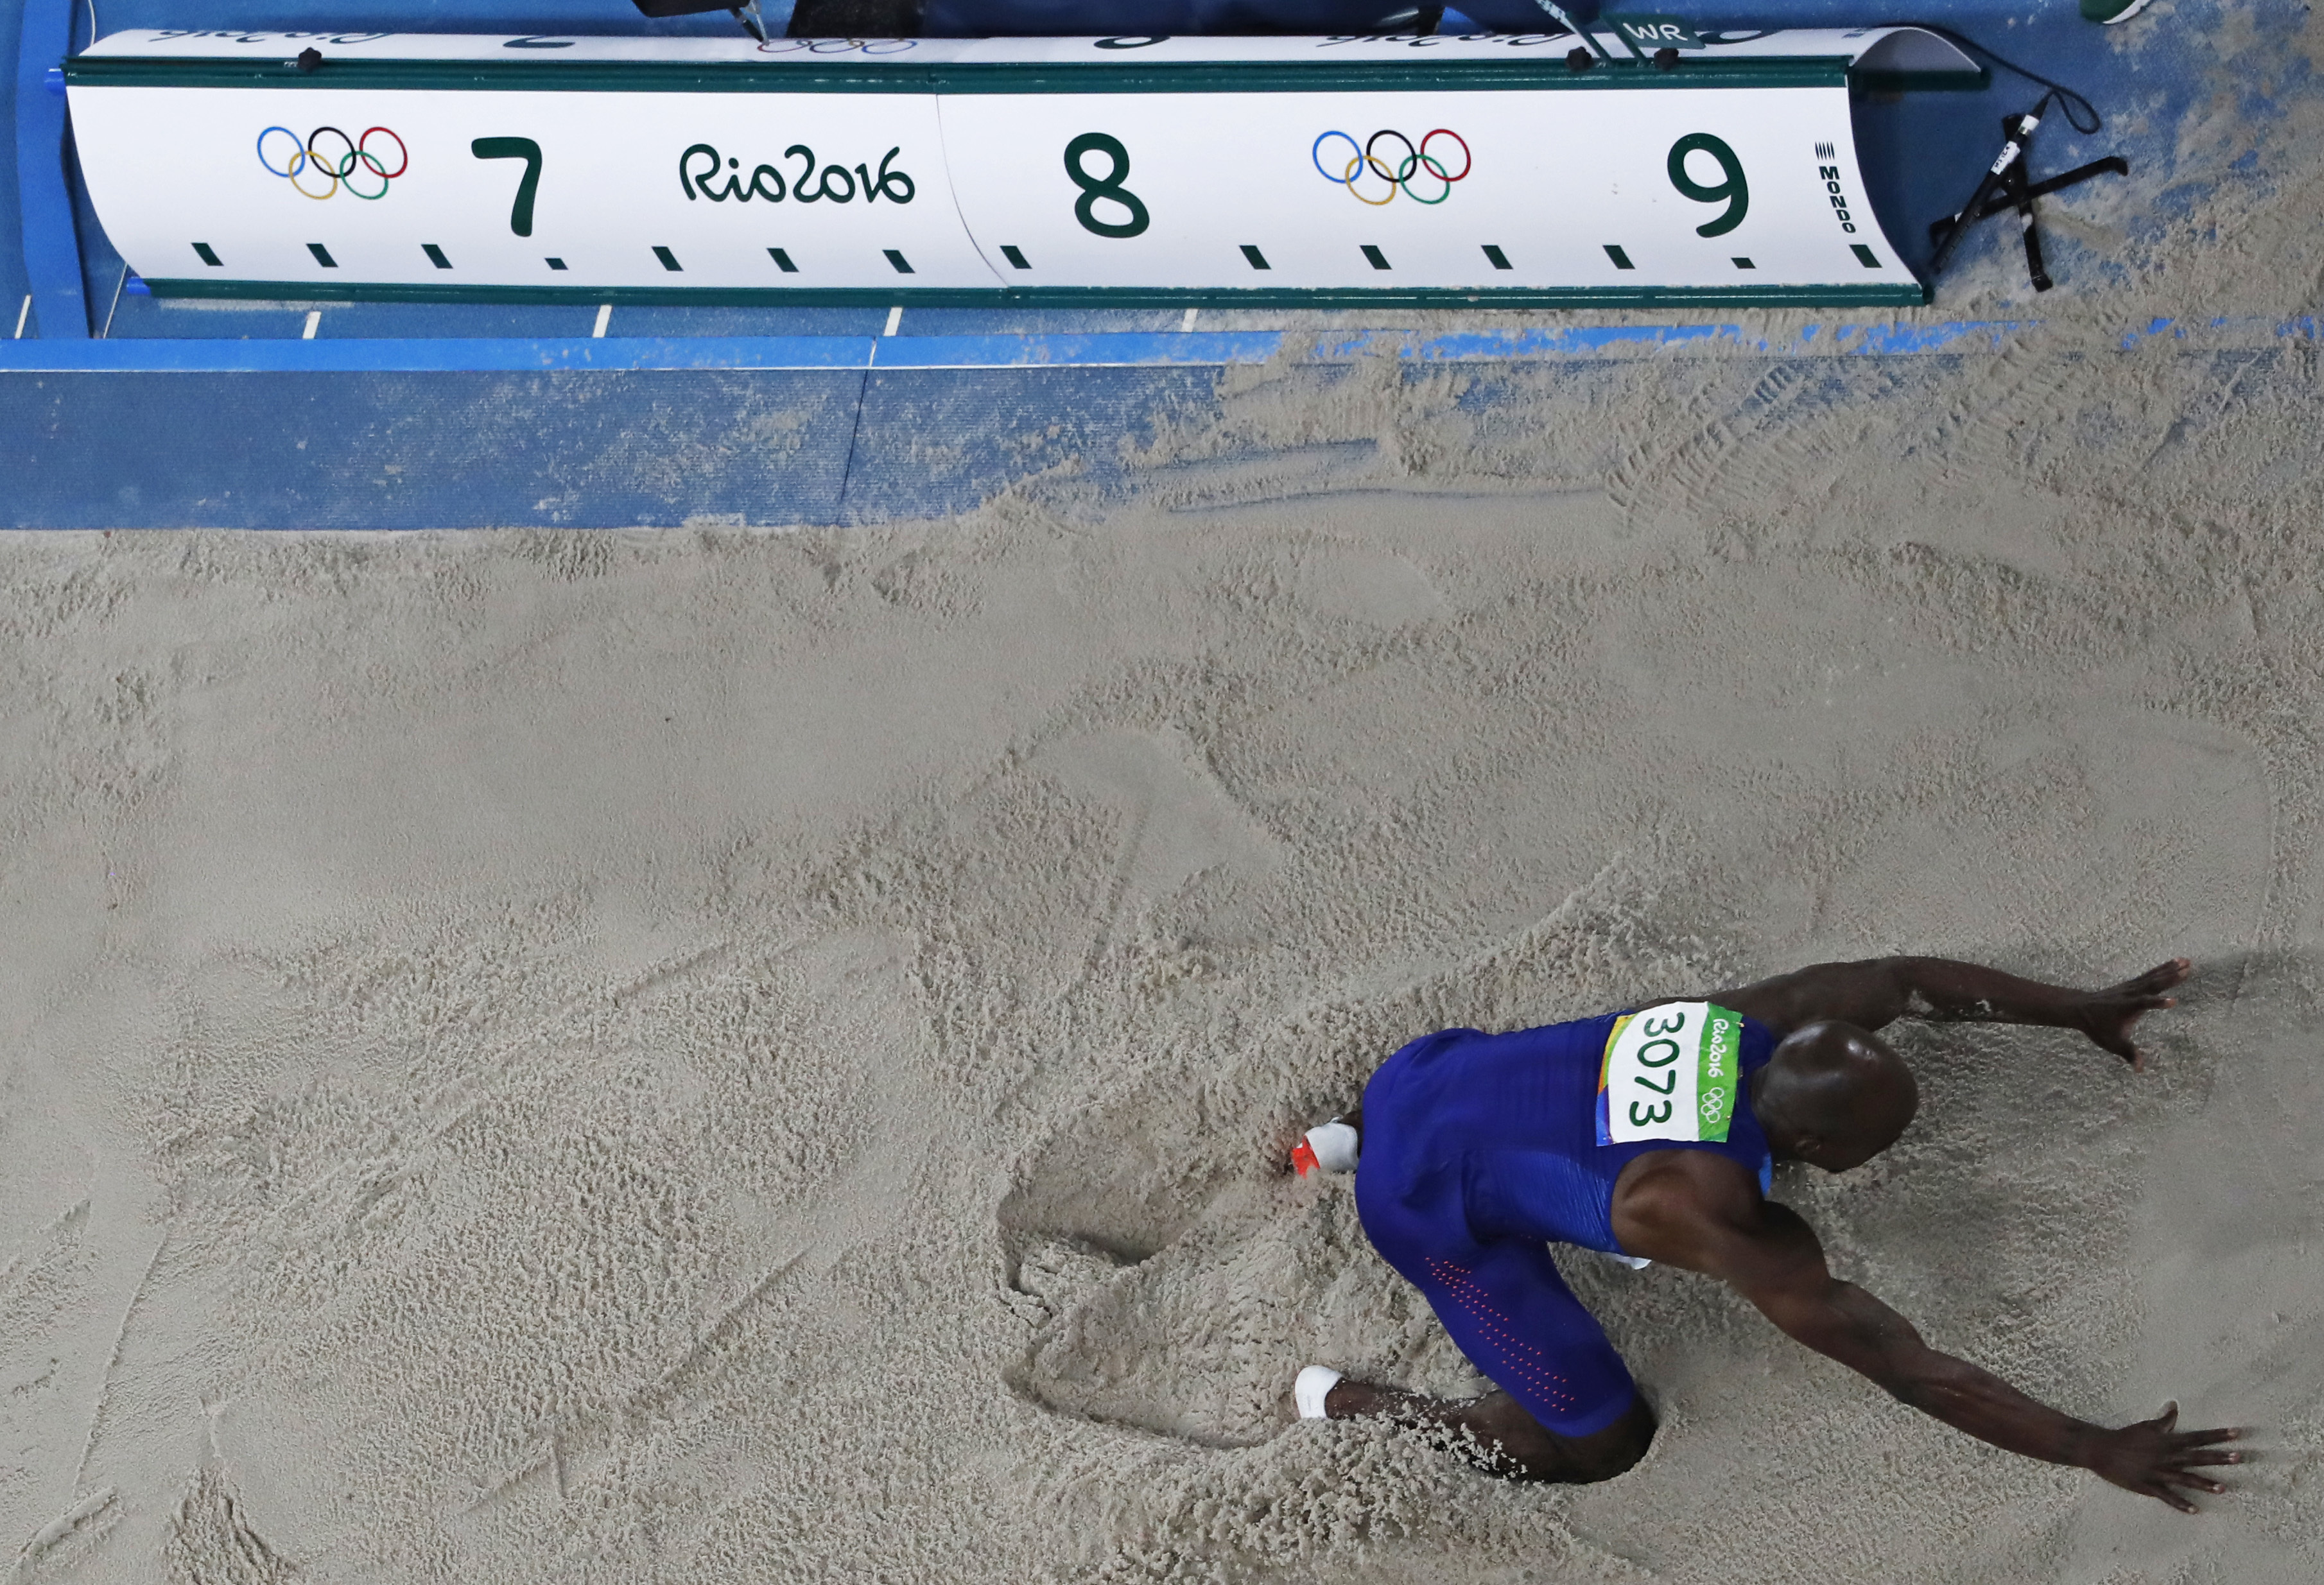 United States' Jeff Henderson lands after an attempt in the long jump finals during the athletics competitions of the 2016 Summer Olympics at the Olympic stadium in Rio de Janeiro, Brazil, Saturday, Aug. 13, 2016. (AP Photo/Morry Gash)